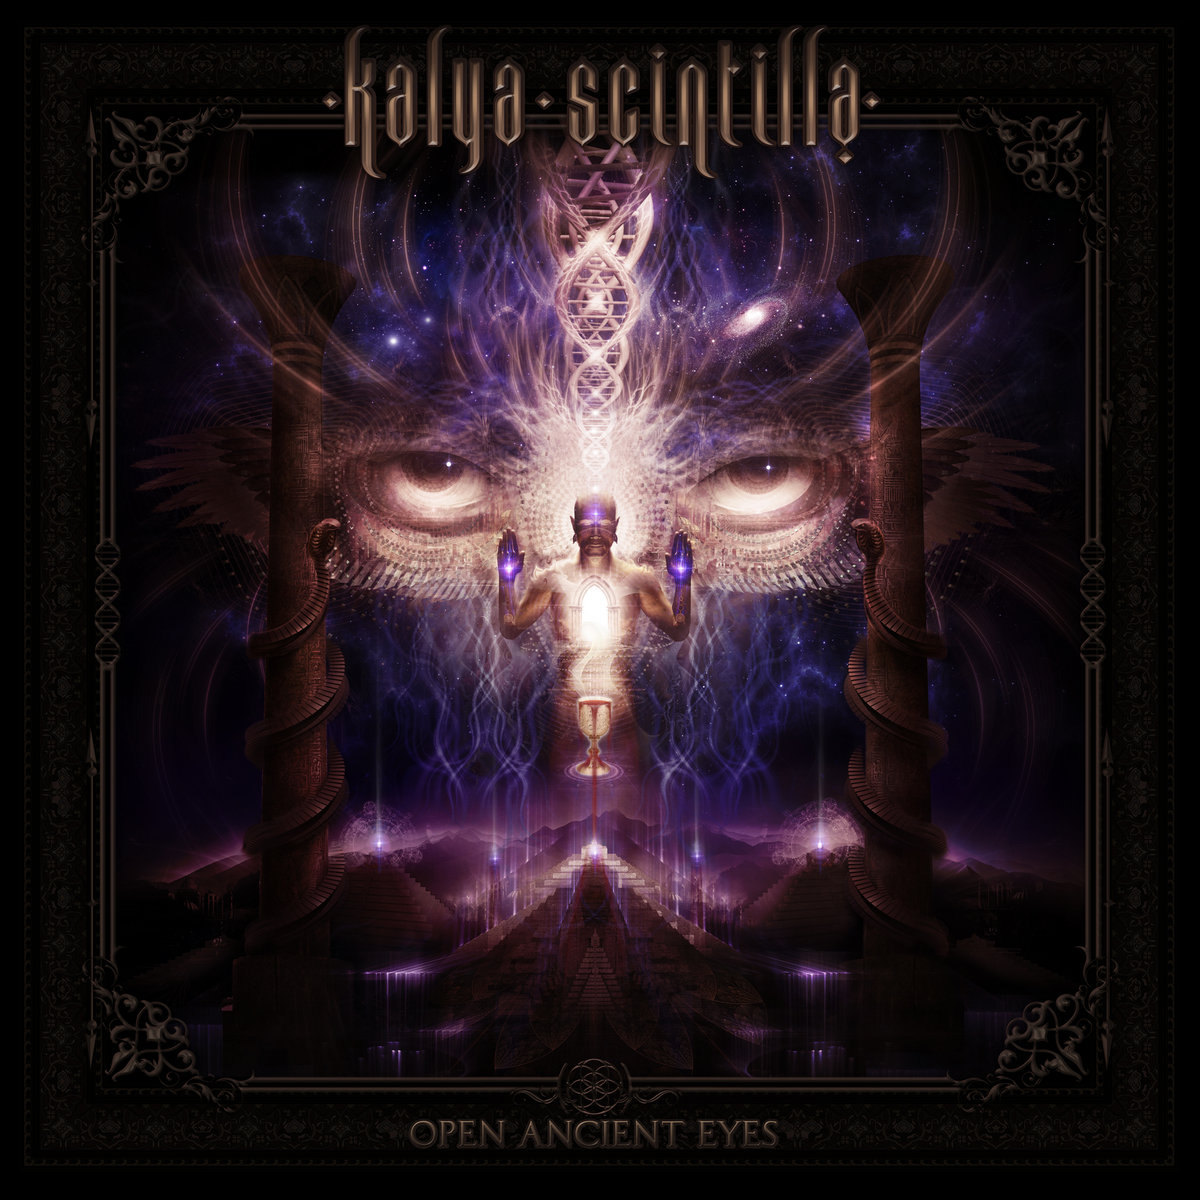 Kalya Scintilla - Eastern Opulence @ 'Open Ancient Eyes' album (432hz, electronic)